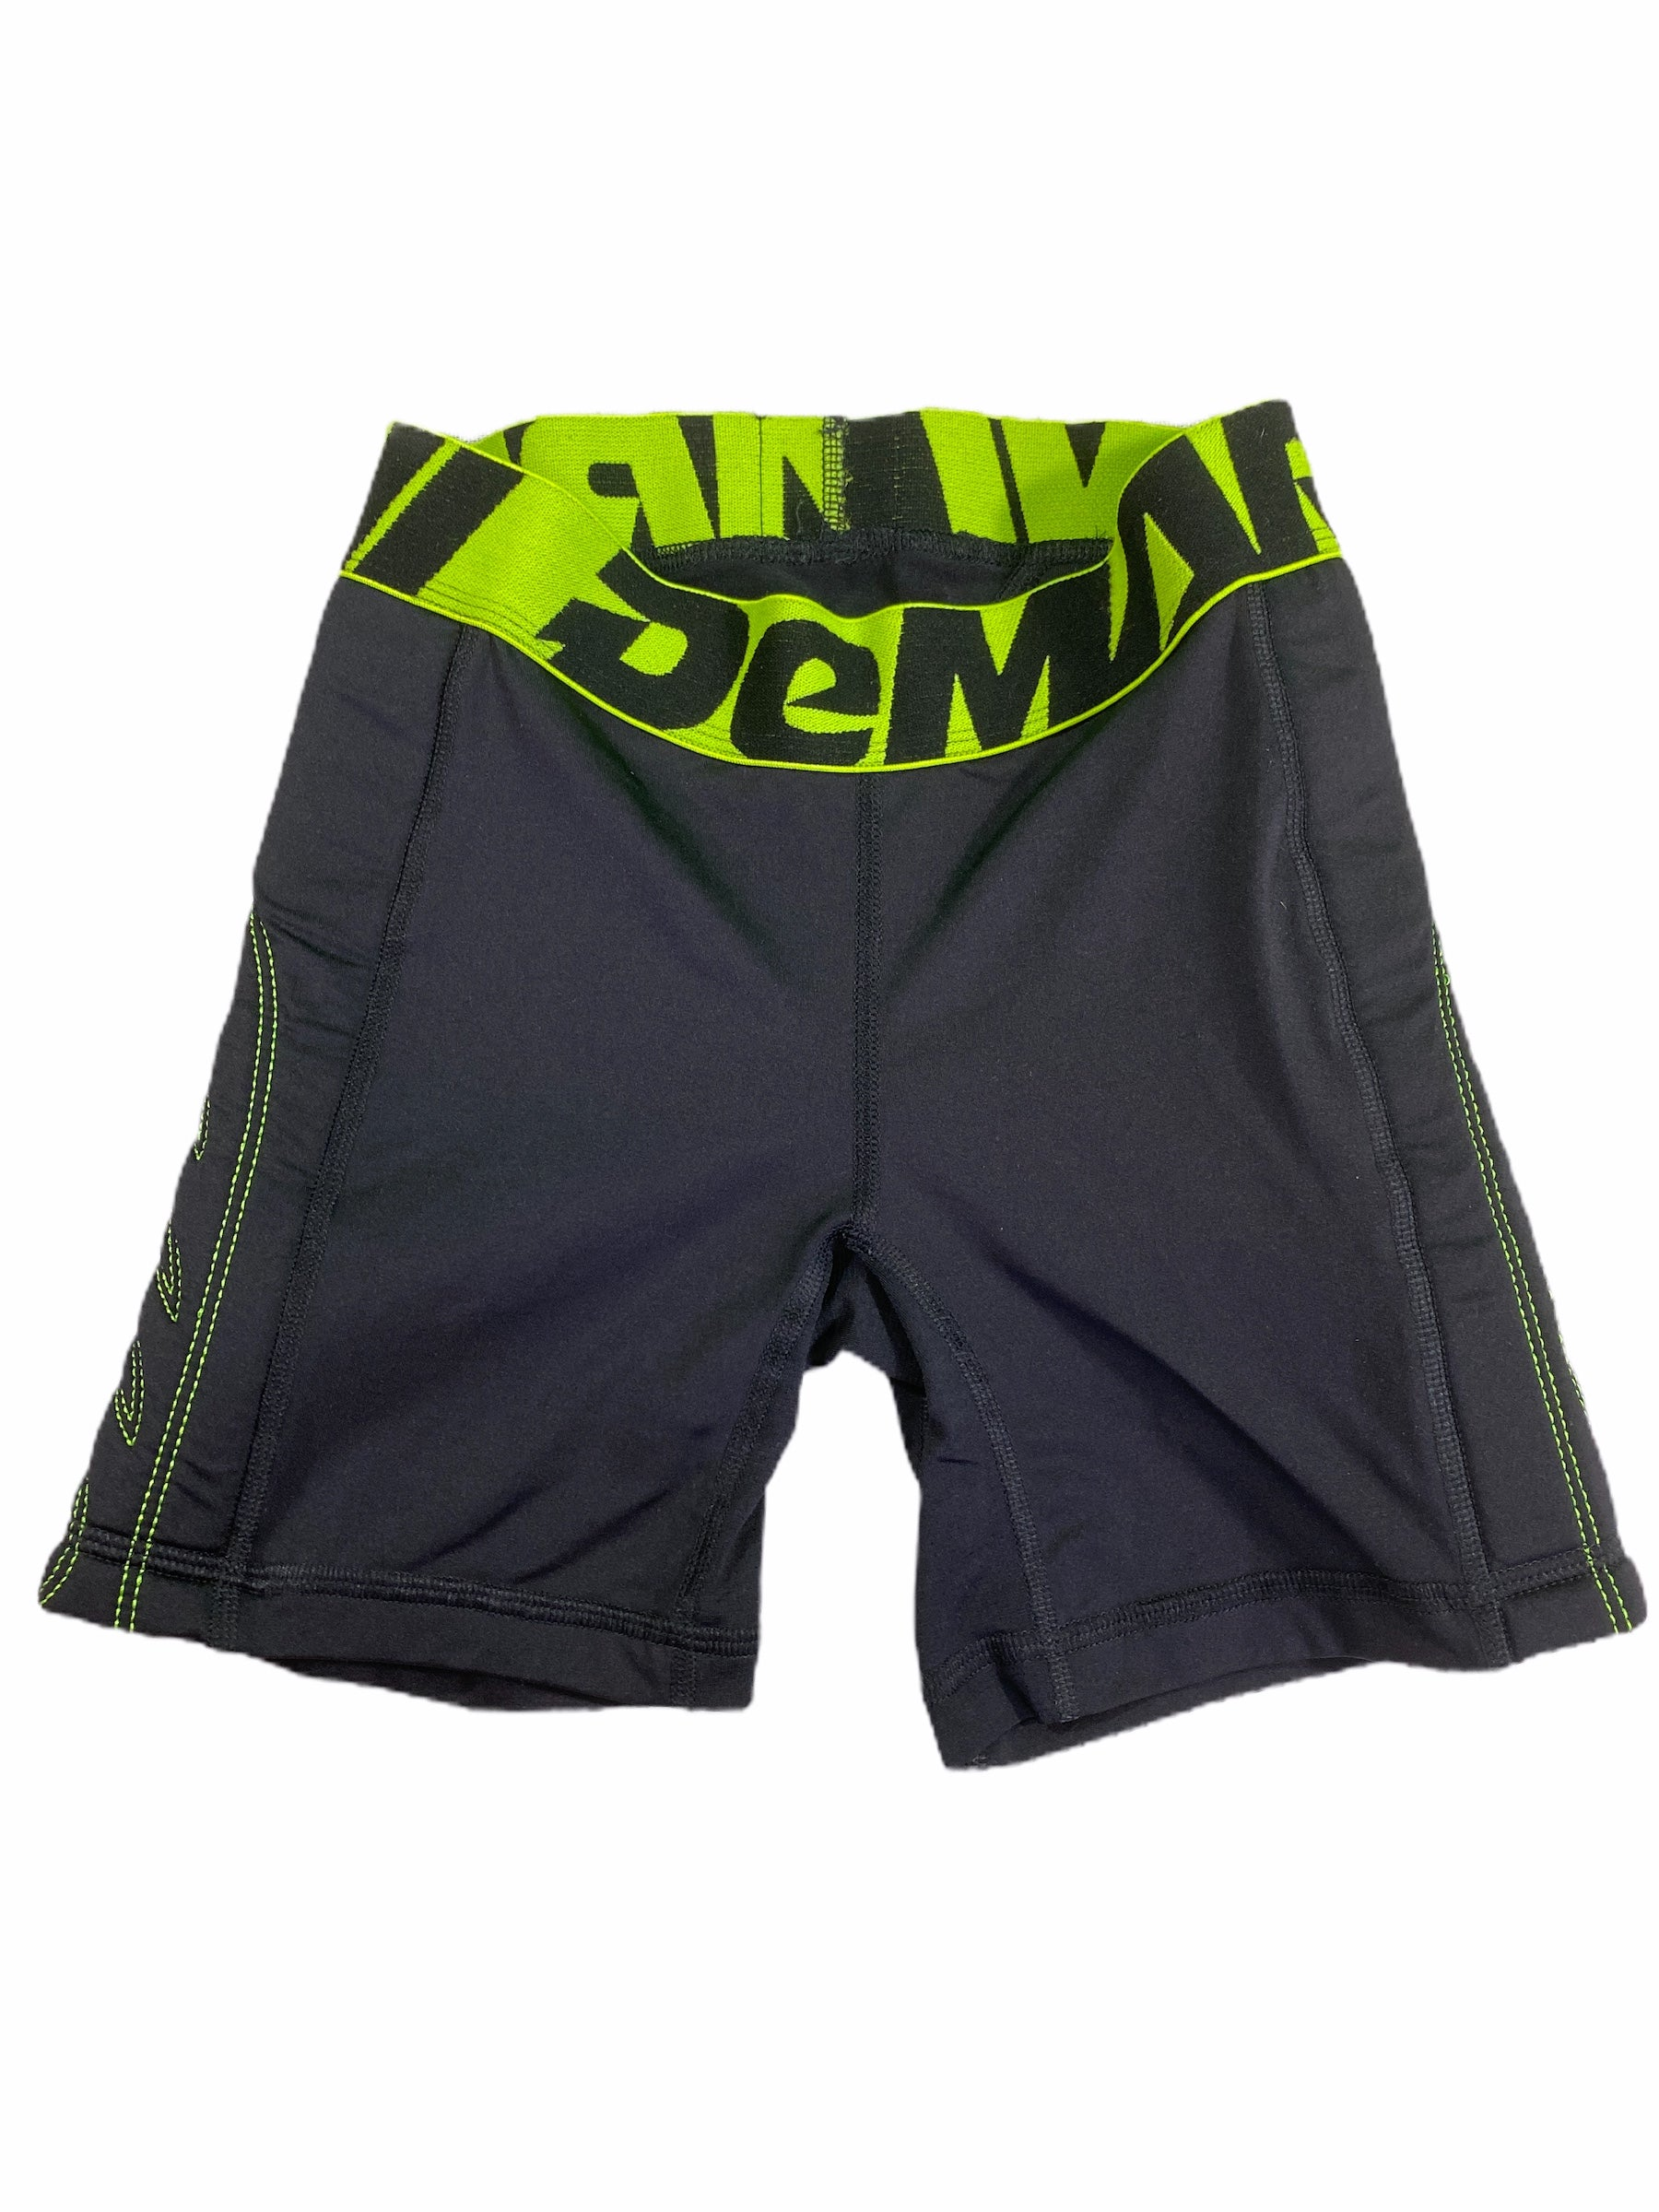 Demar Padded Sport Short (12/14 Boys)